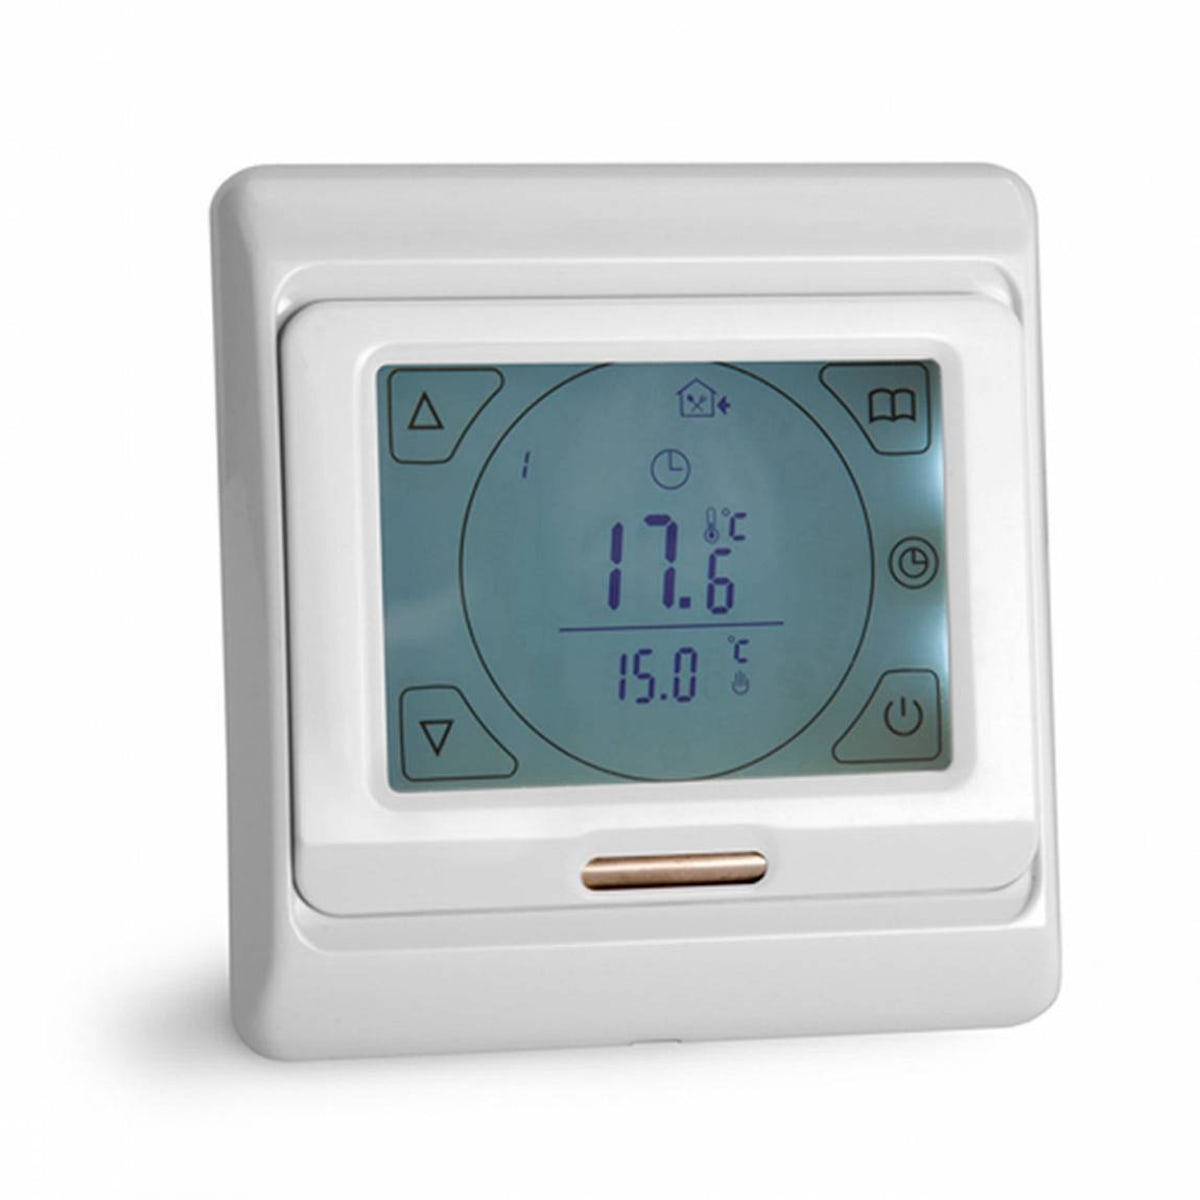 touch screen thermostat. Black Bedroom Furniture Sets. Home Design Ideas